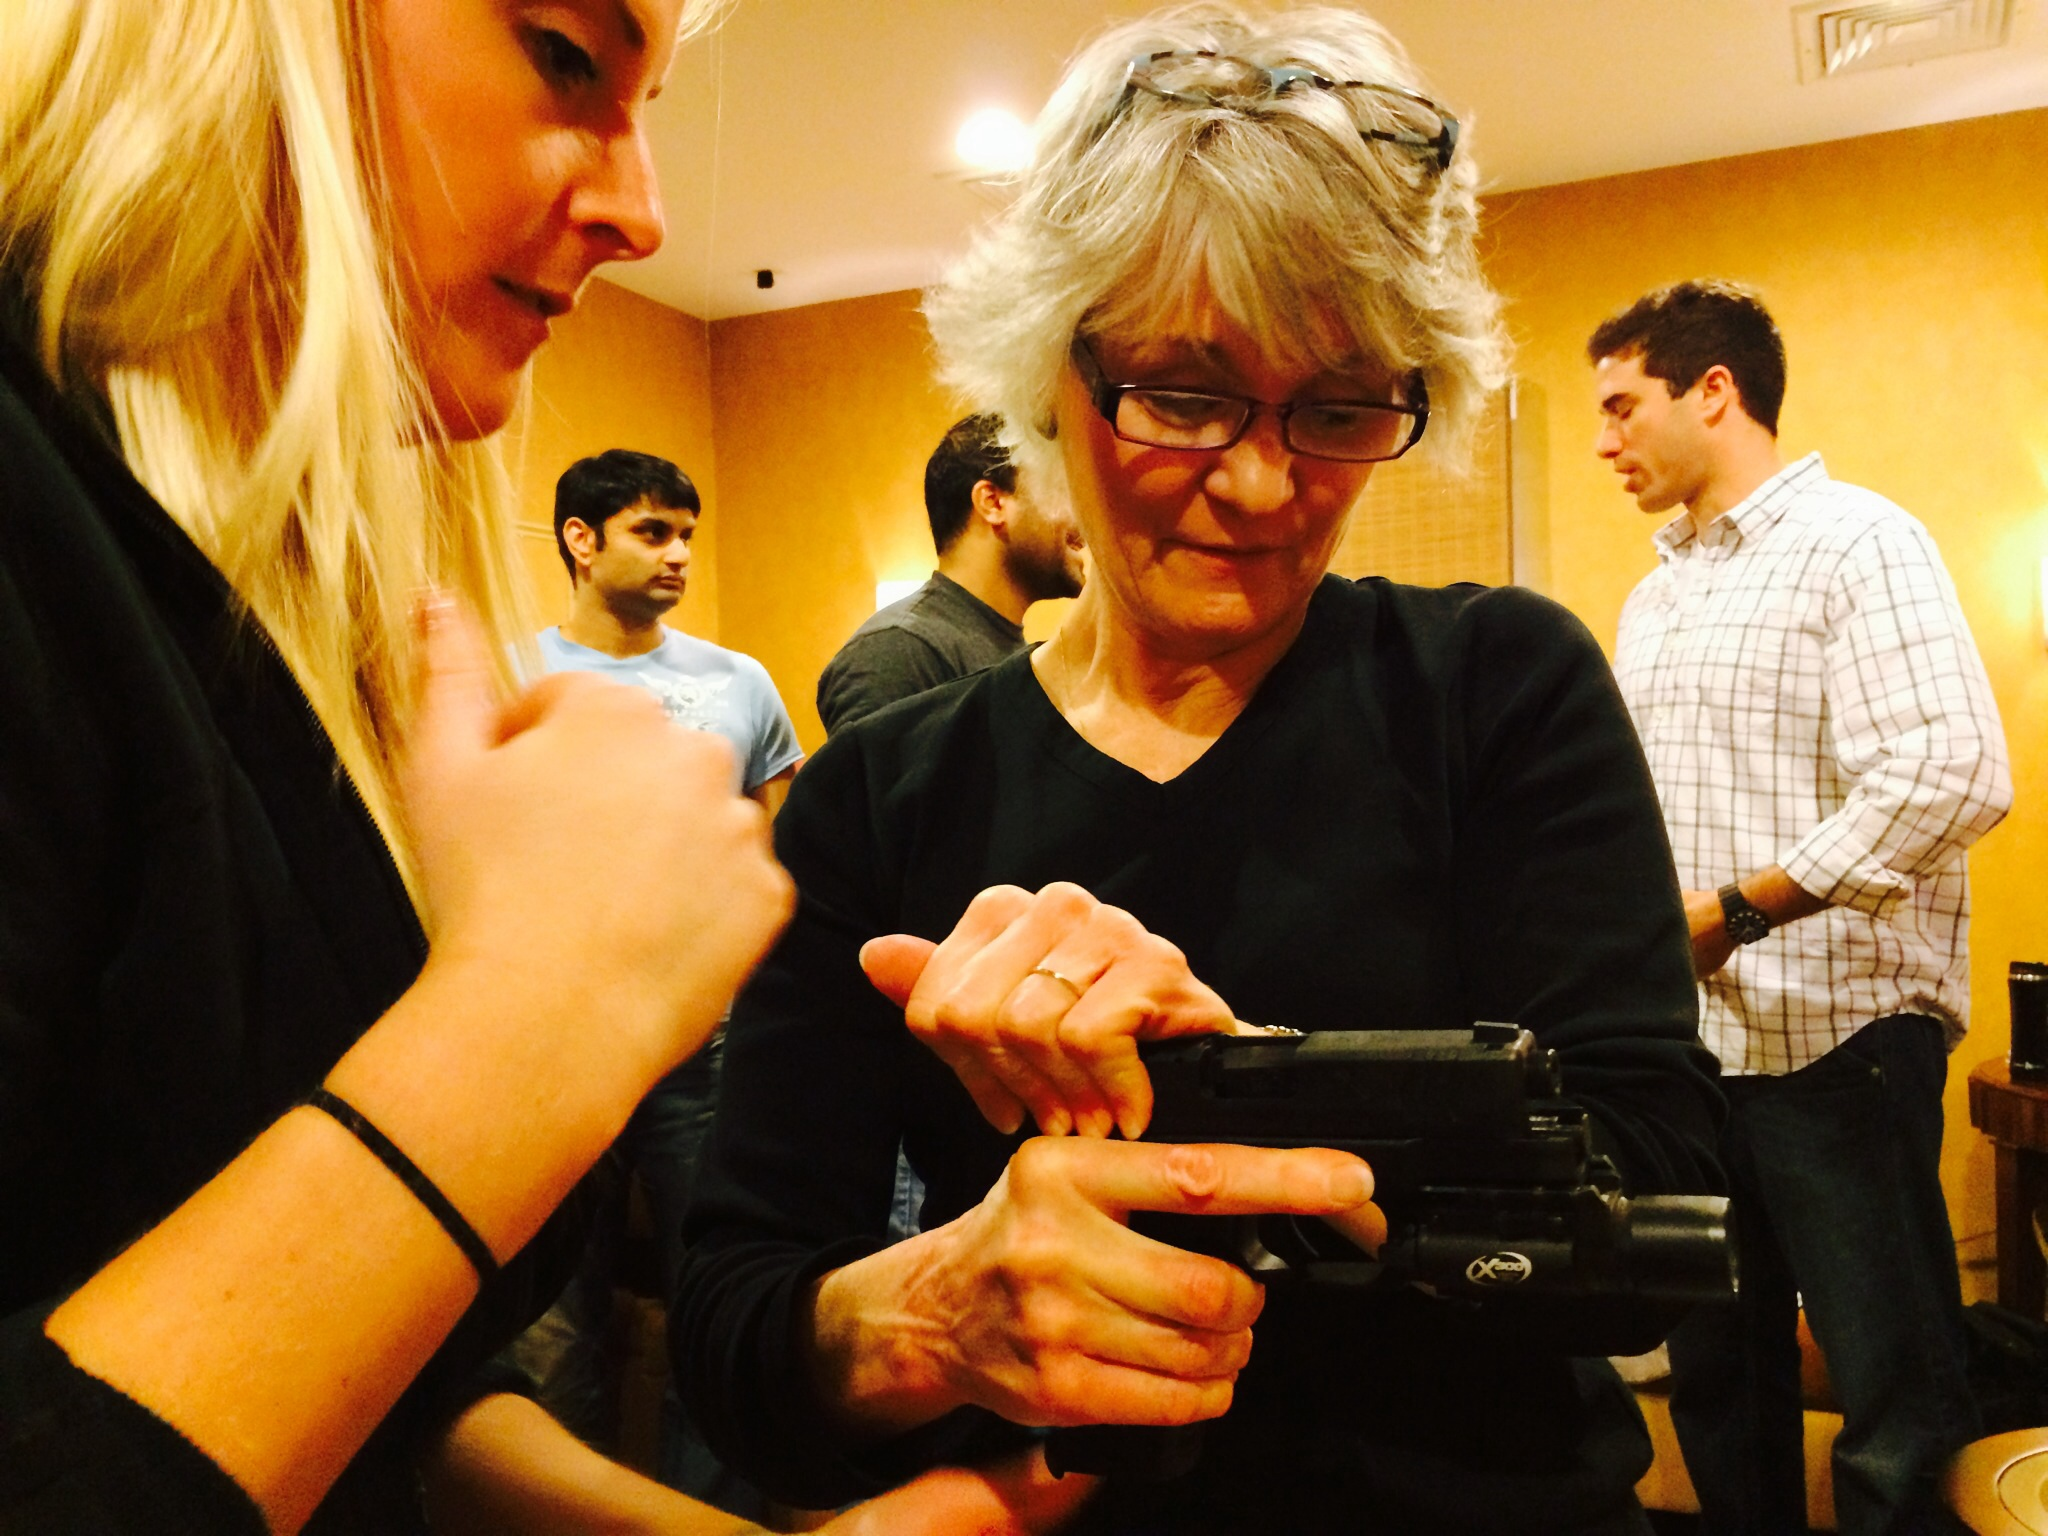 Firearms training requires professional care and ...